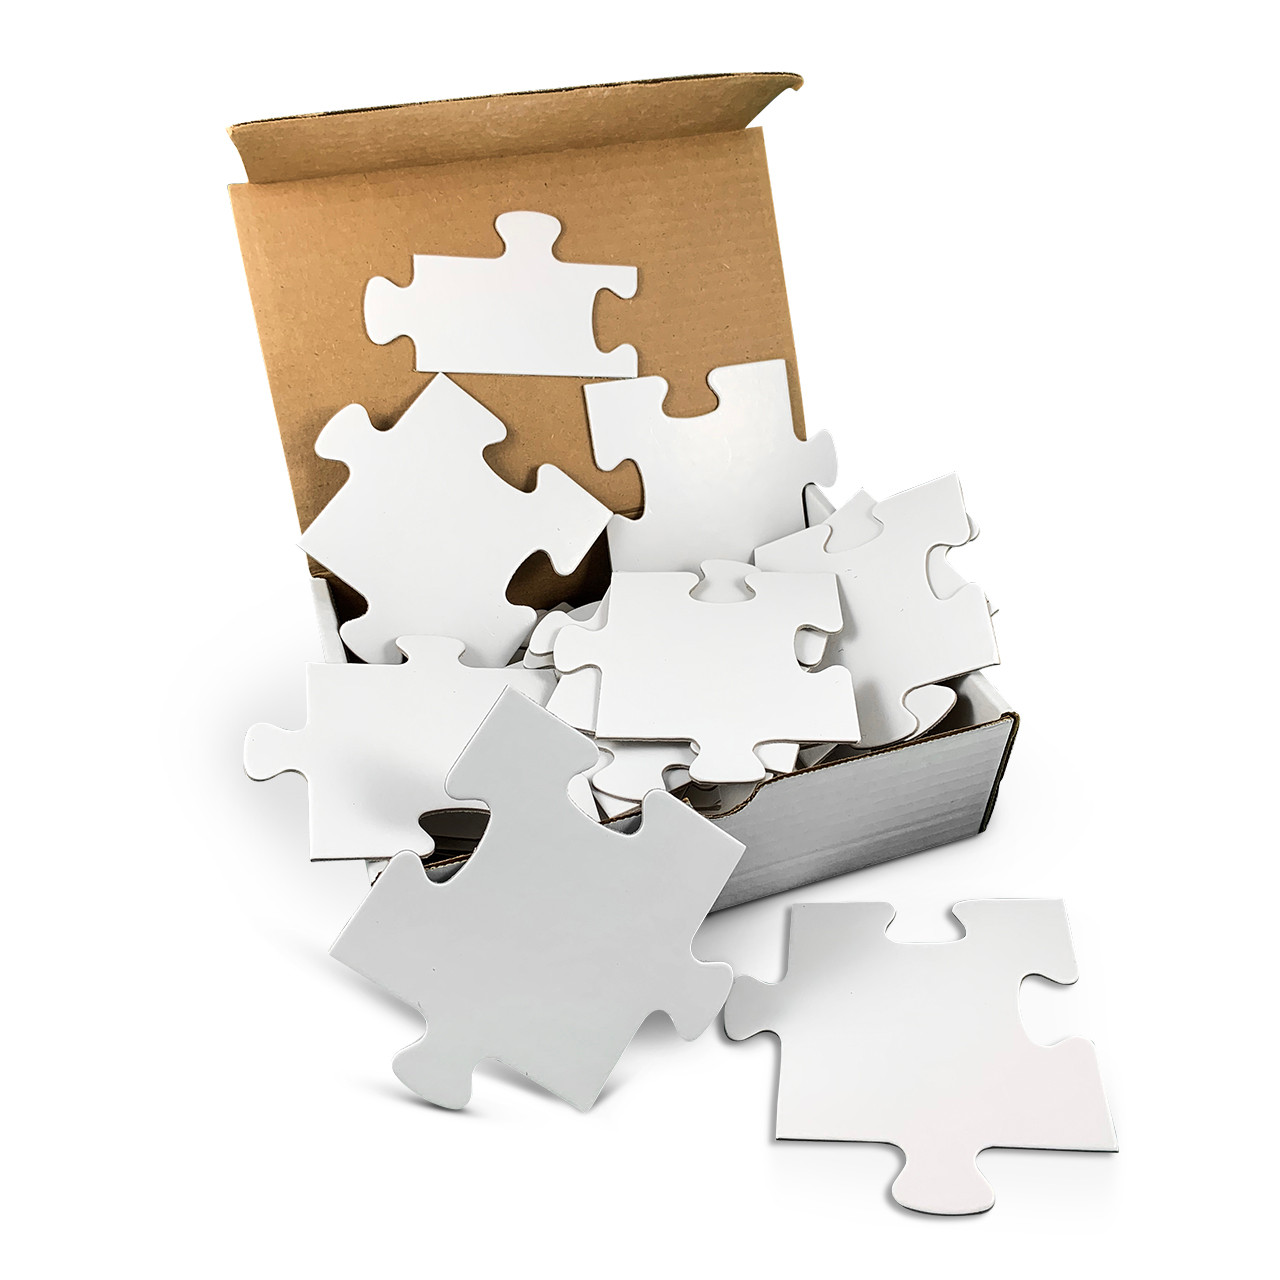 Community Puzzle; in box